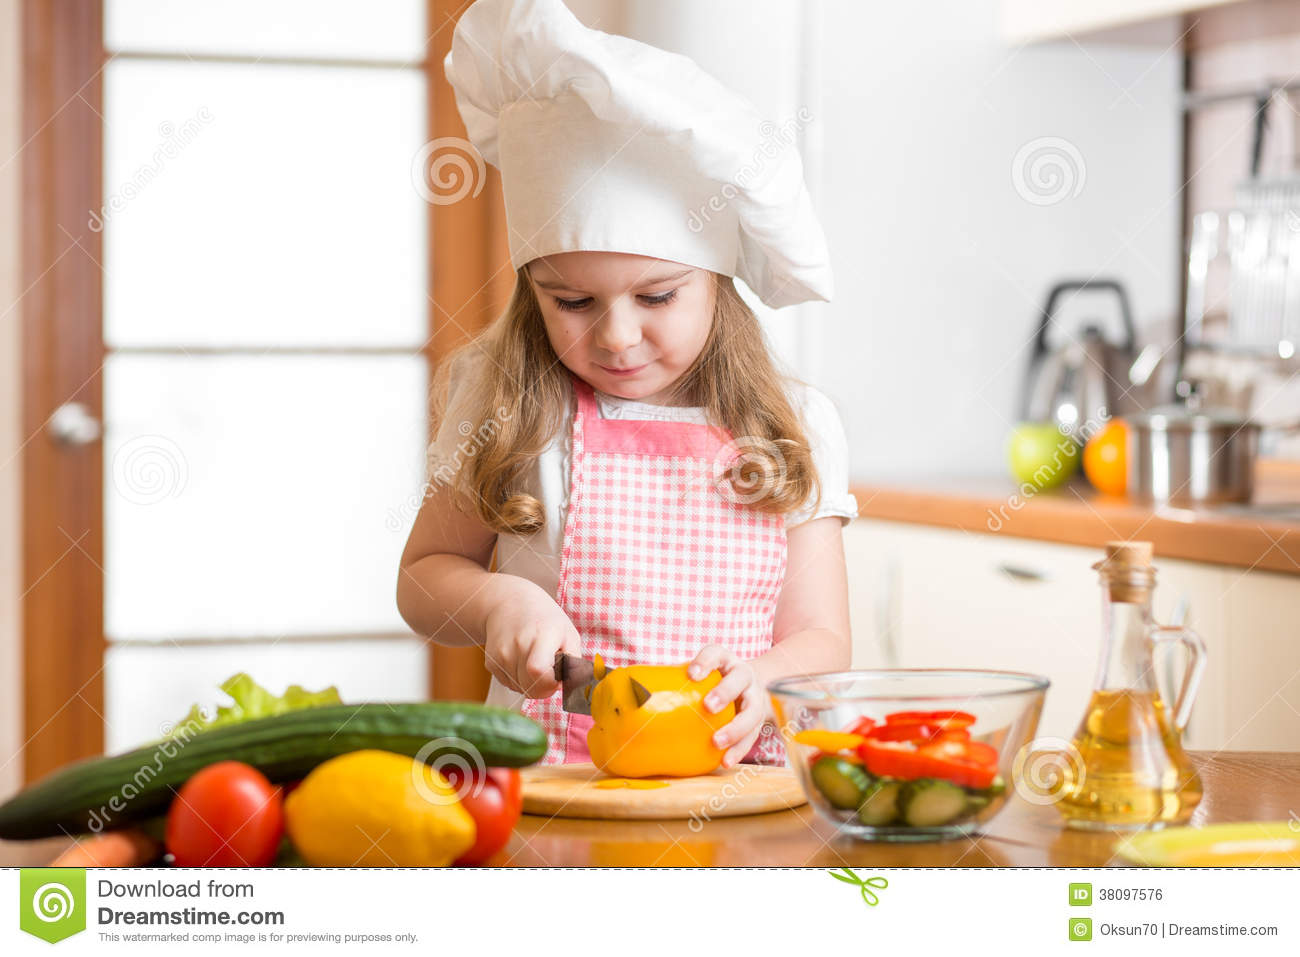 Vegetable chopping knife - Kid Girl Cook Cutting Vegetables Royalty Free Stock Image Image